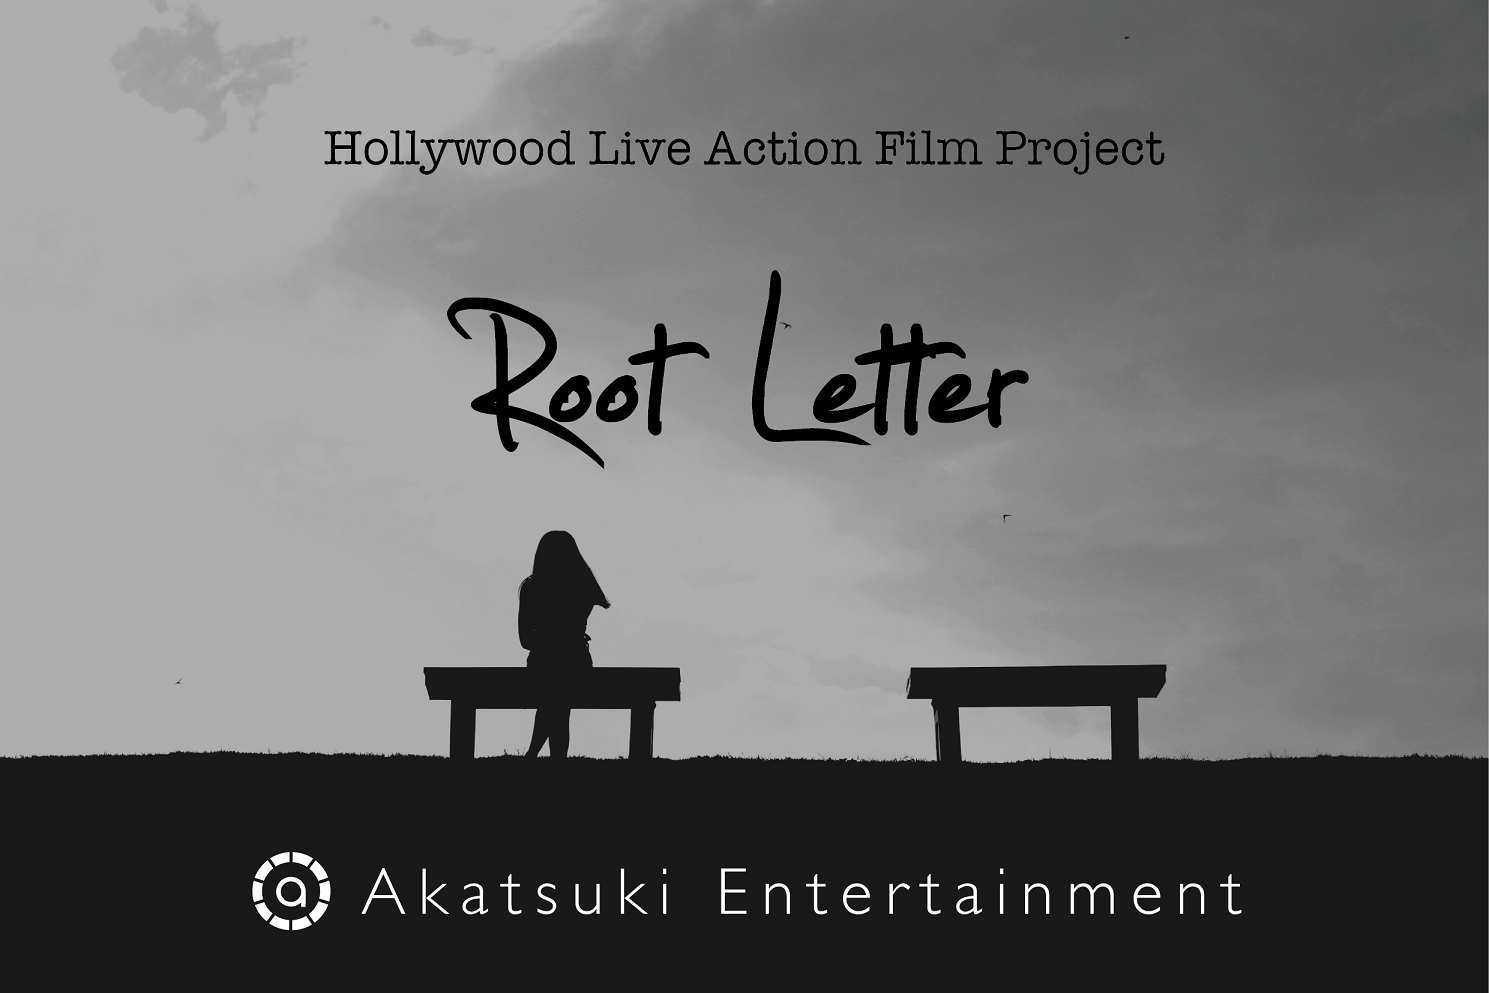 root-letter-hollywood-movie.png